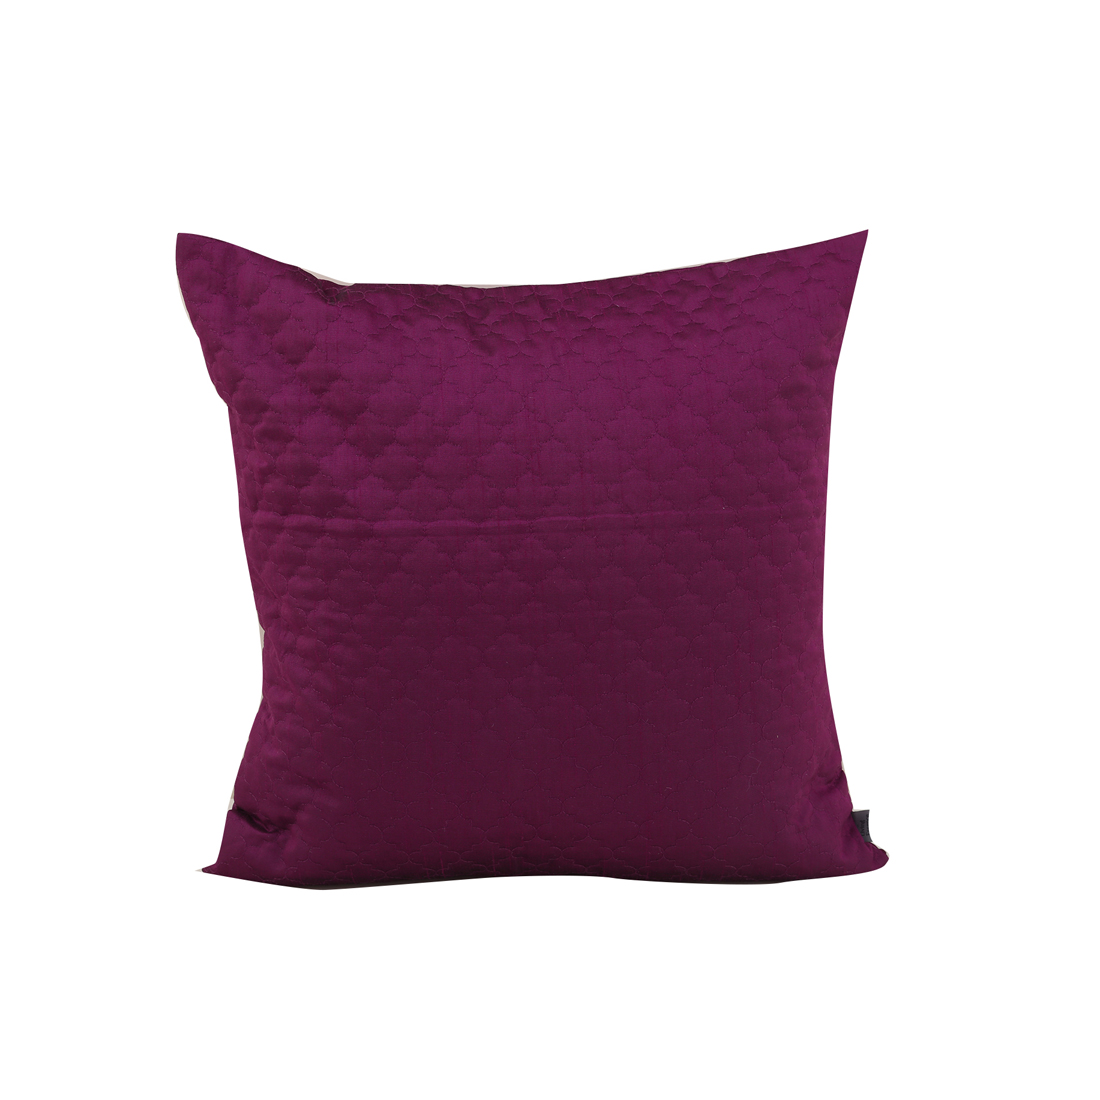 Arta Polyester Cushion Covers in Purple Colour by Living Essence